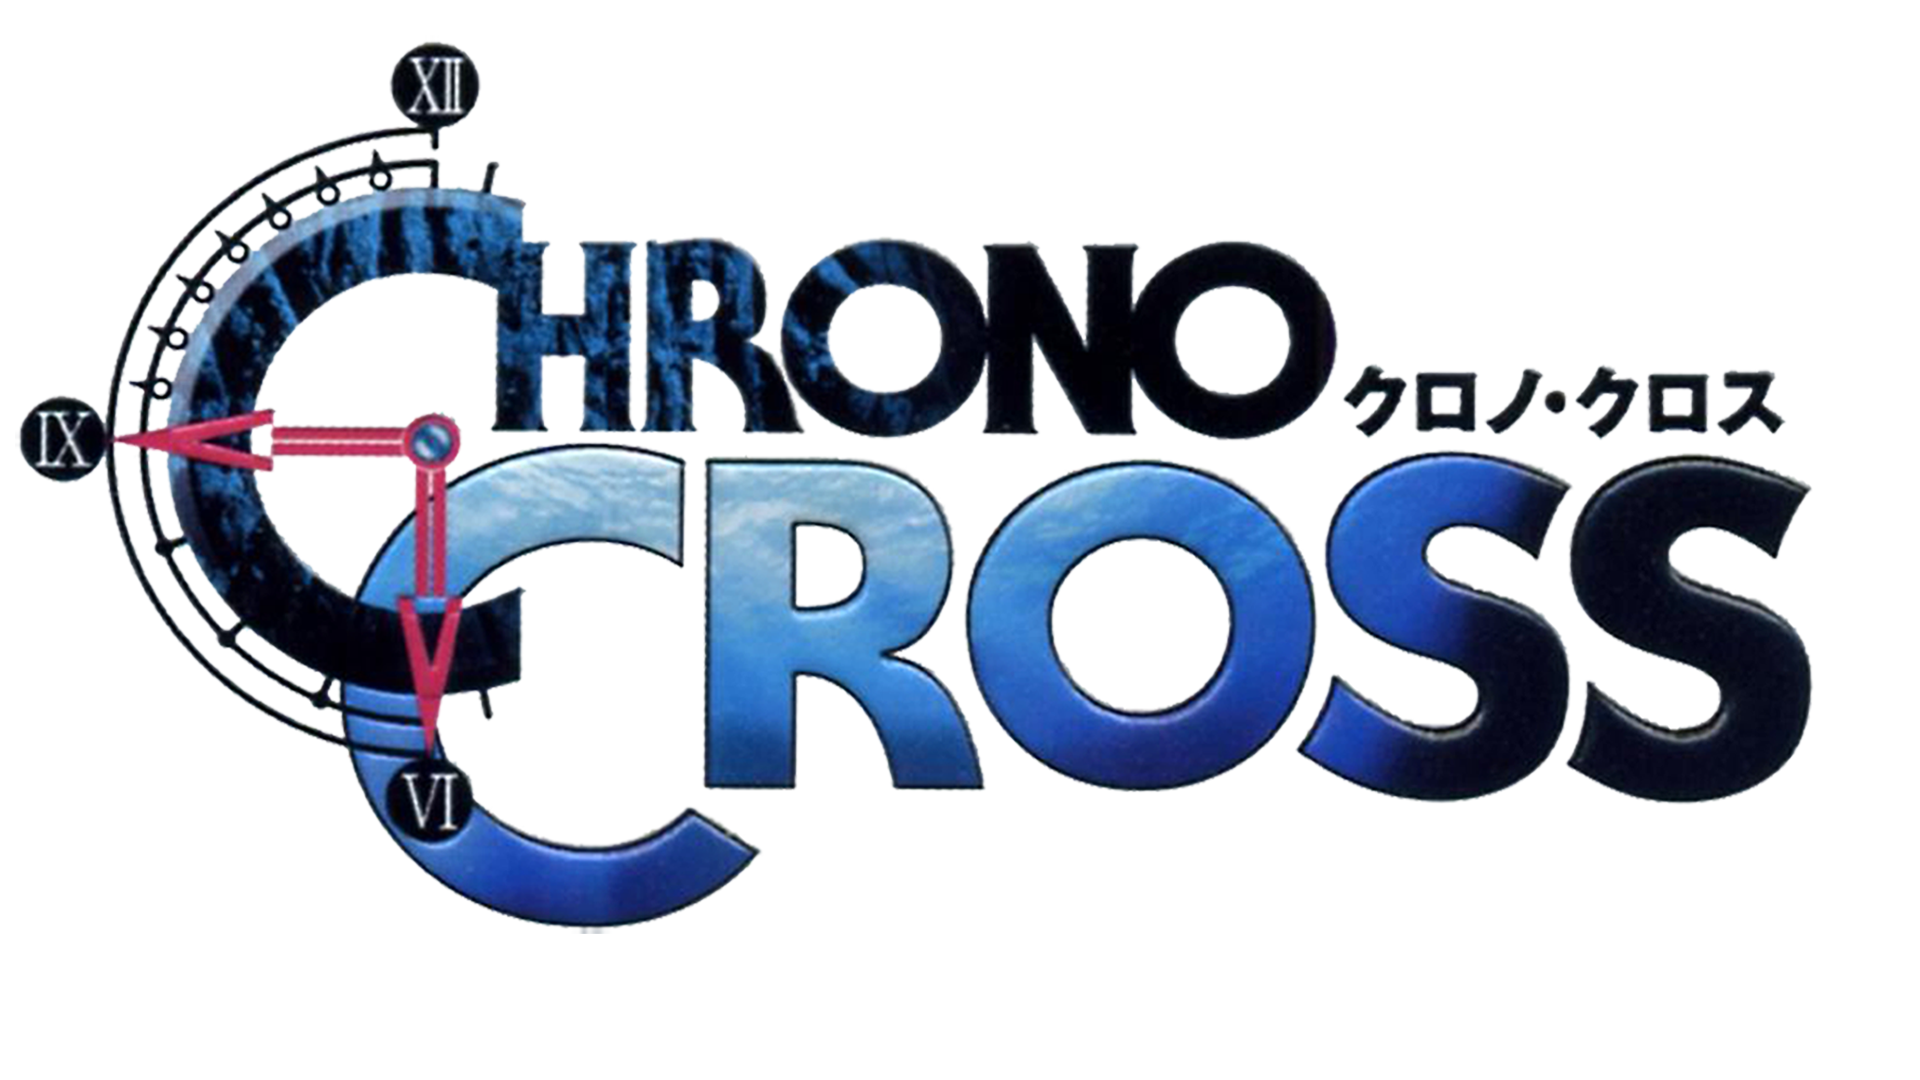 Chrono Cross Logo